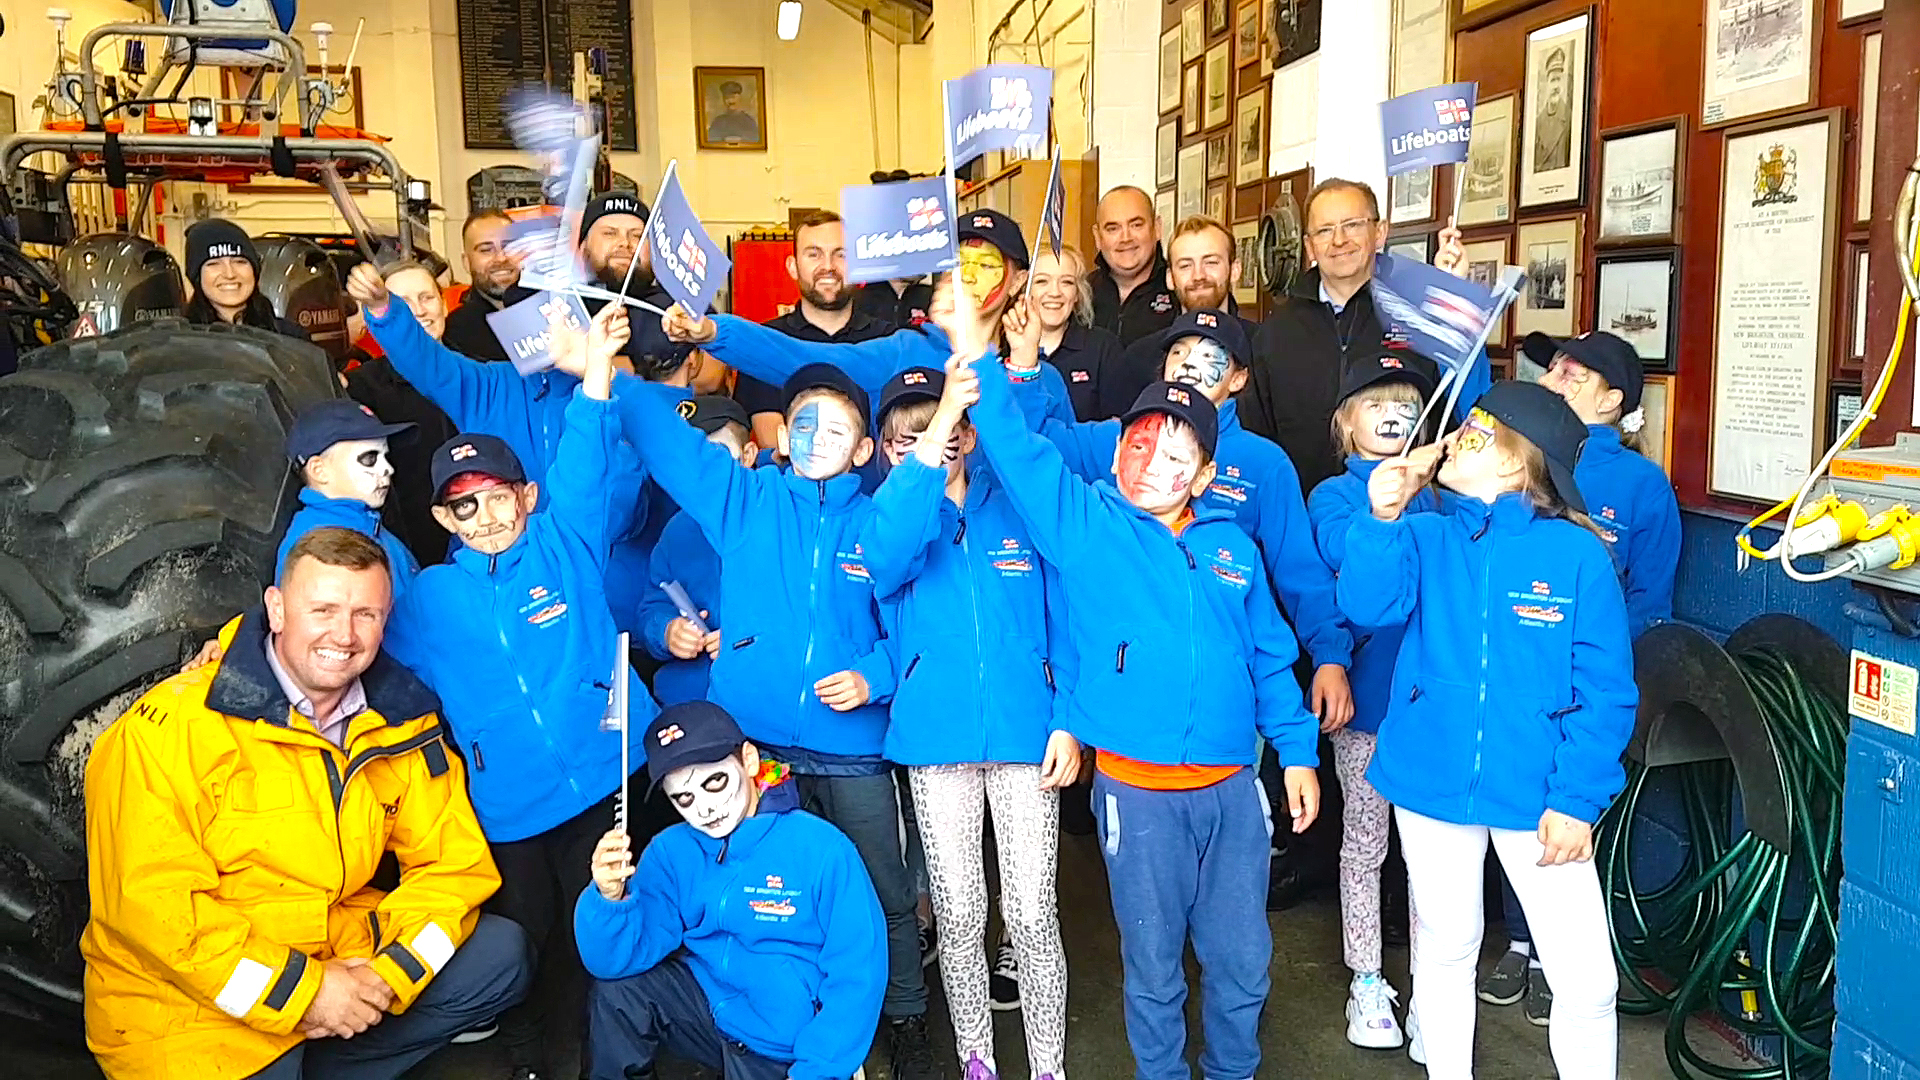 Group picture with the children wearing fleeces and hats while waving RNLI scarves